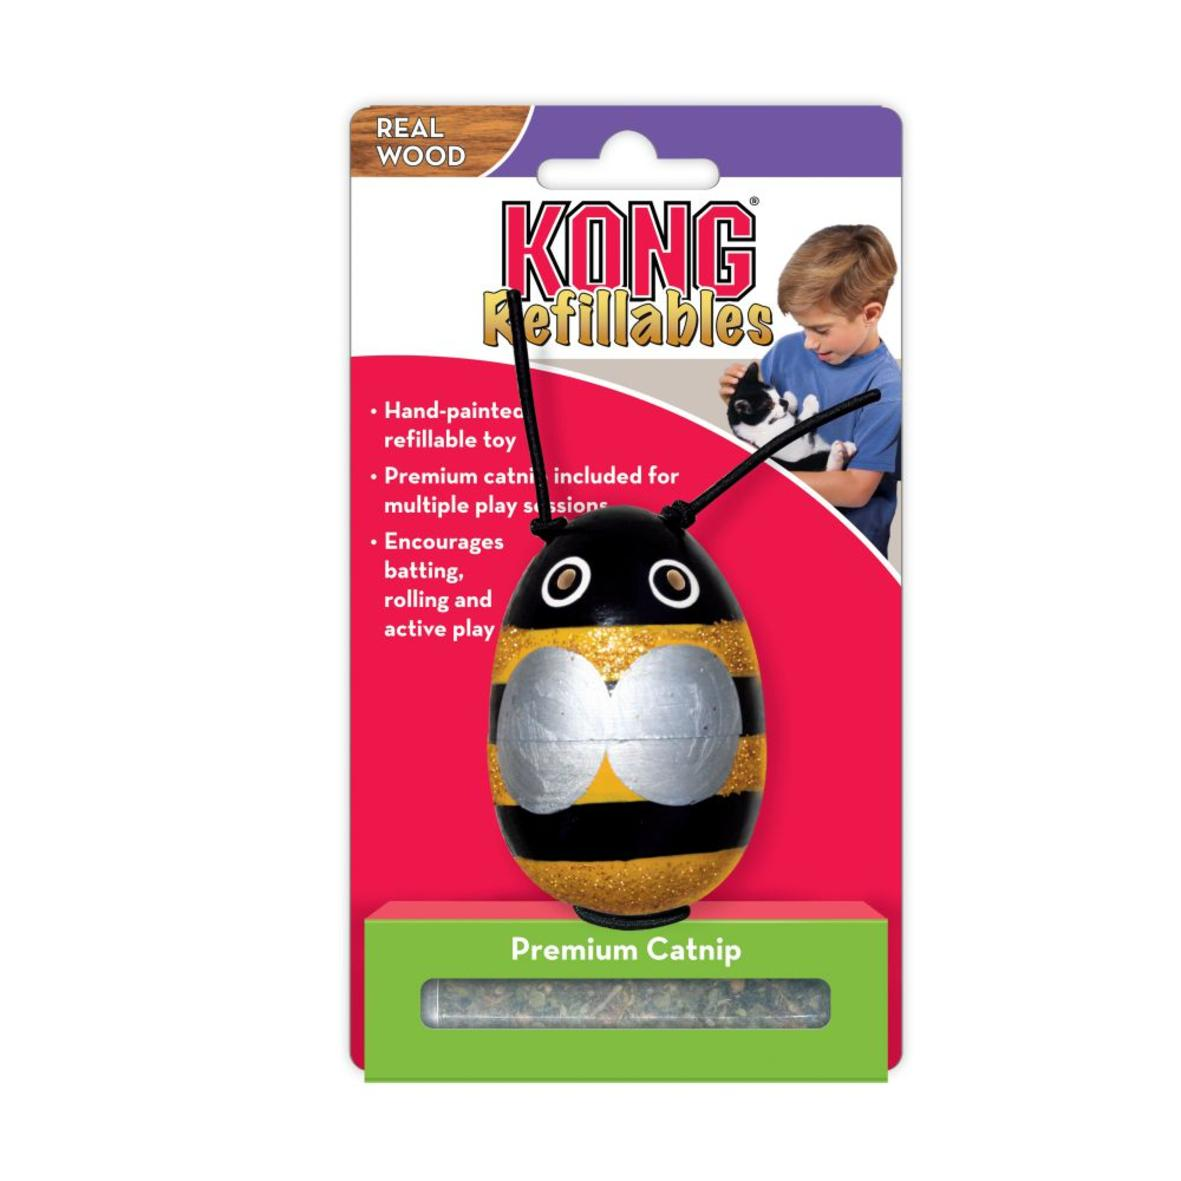 KONG Refillables Wood Bug with Catnip 9.5cm (Assorted Designs)